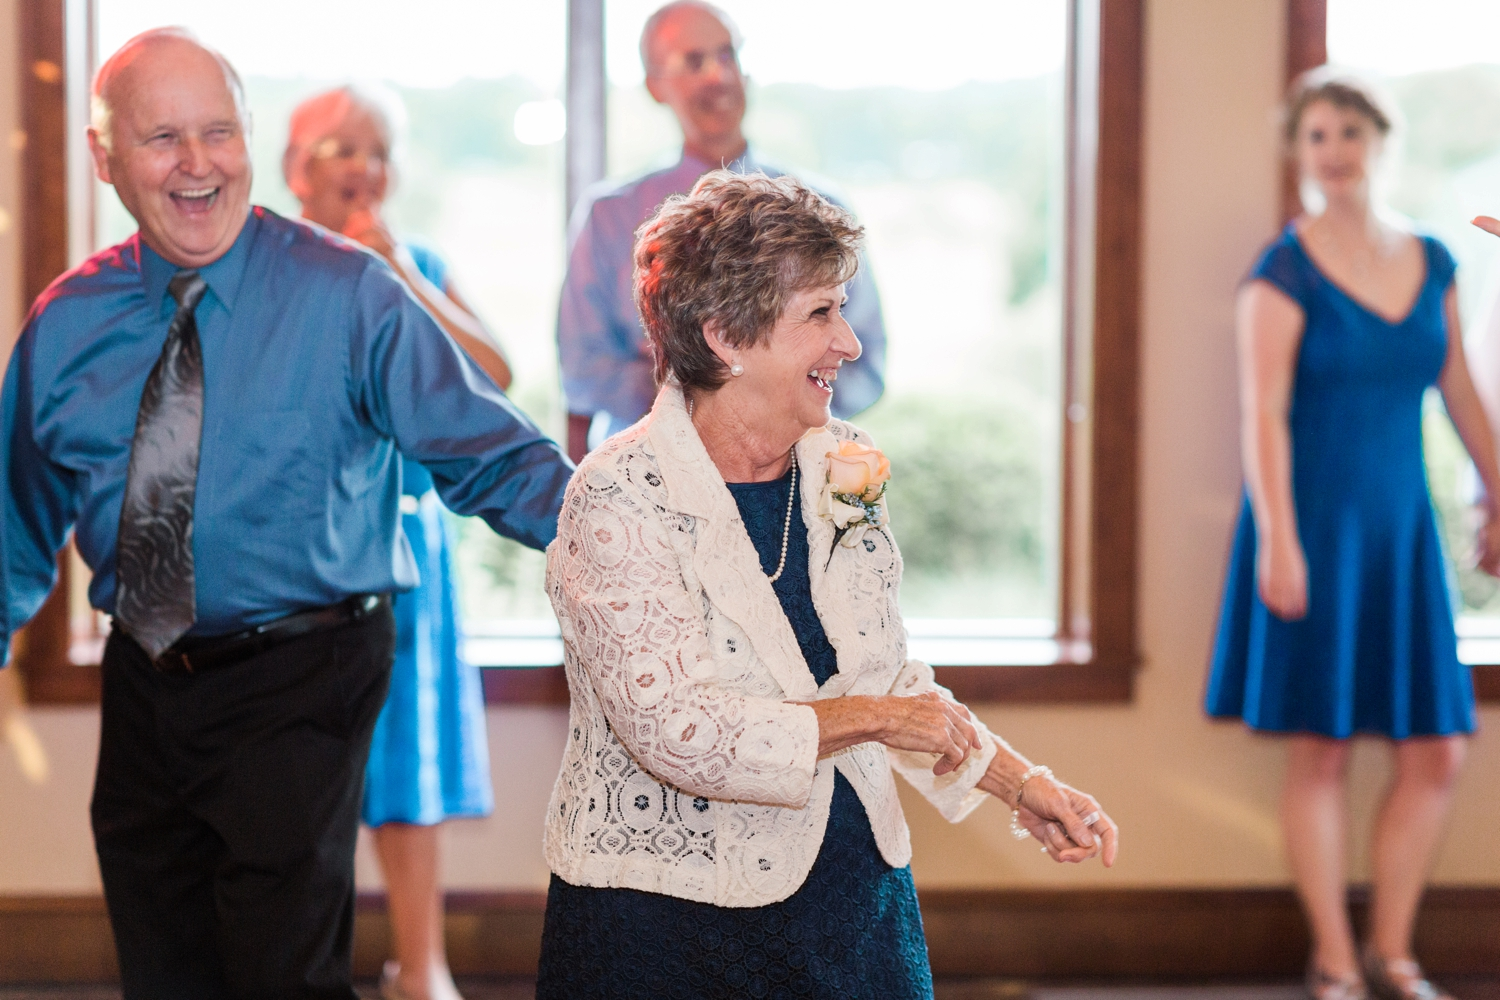 NCR_Country_Club_Kettering_Ohio_Wedding_Photography_Chloe_Luka_Photography_7206.jpg